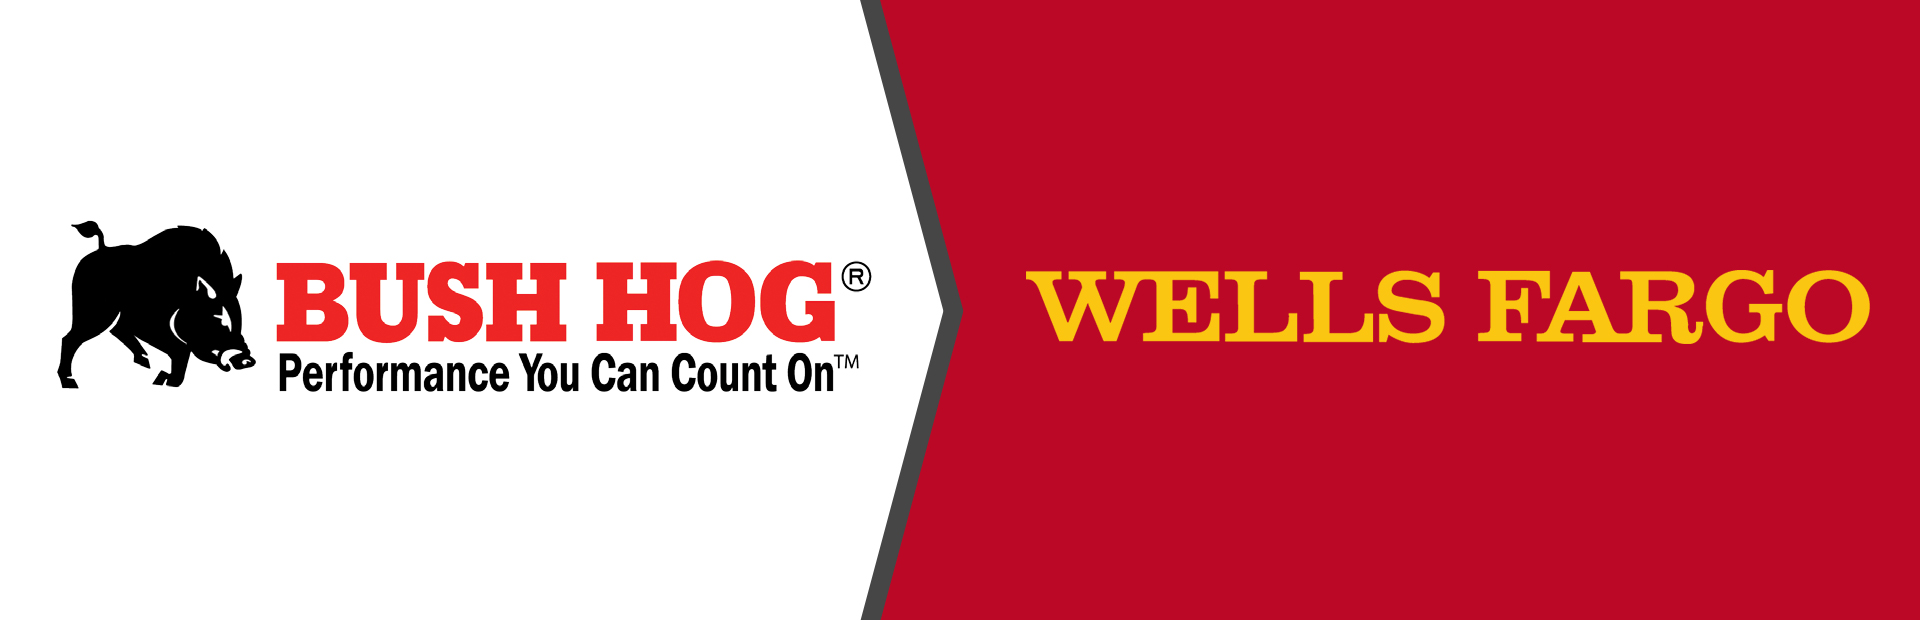 Bush Hog: Wells Fargo Financing